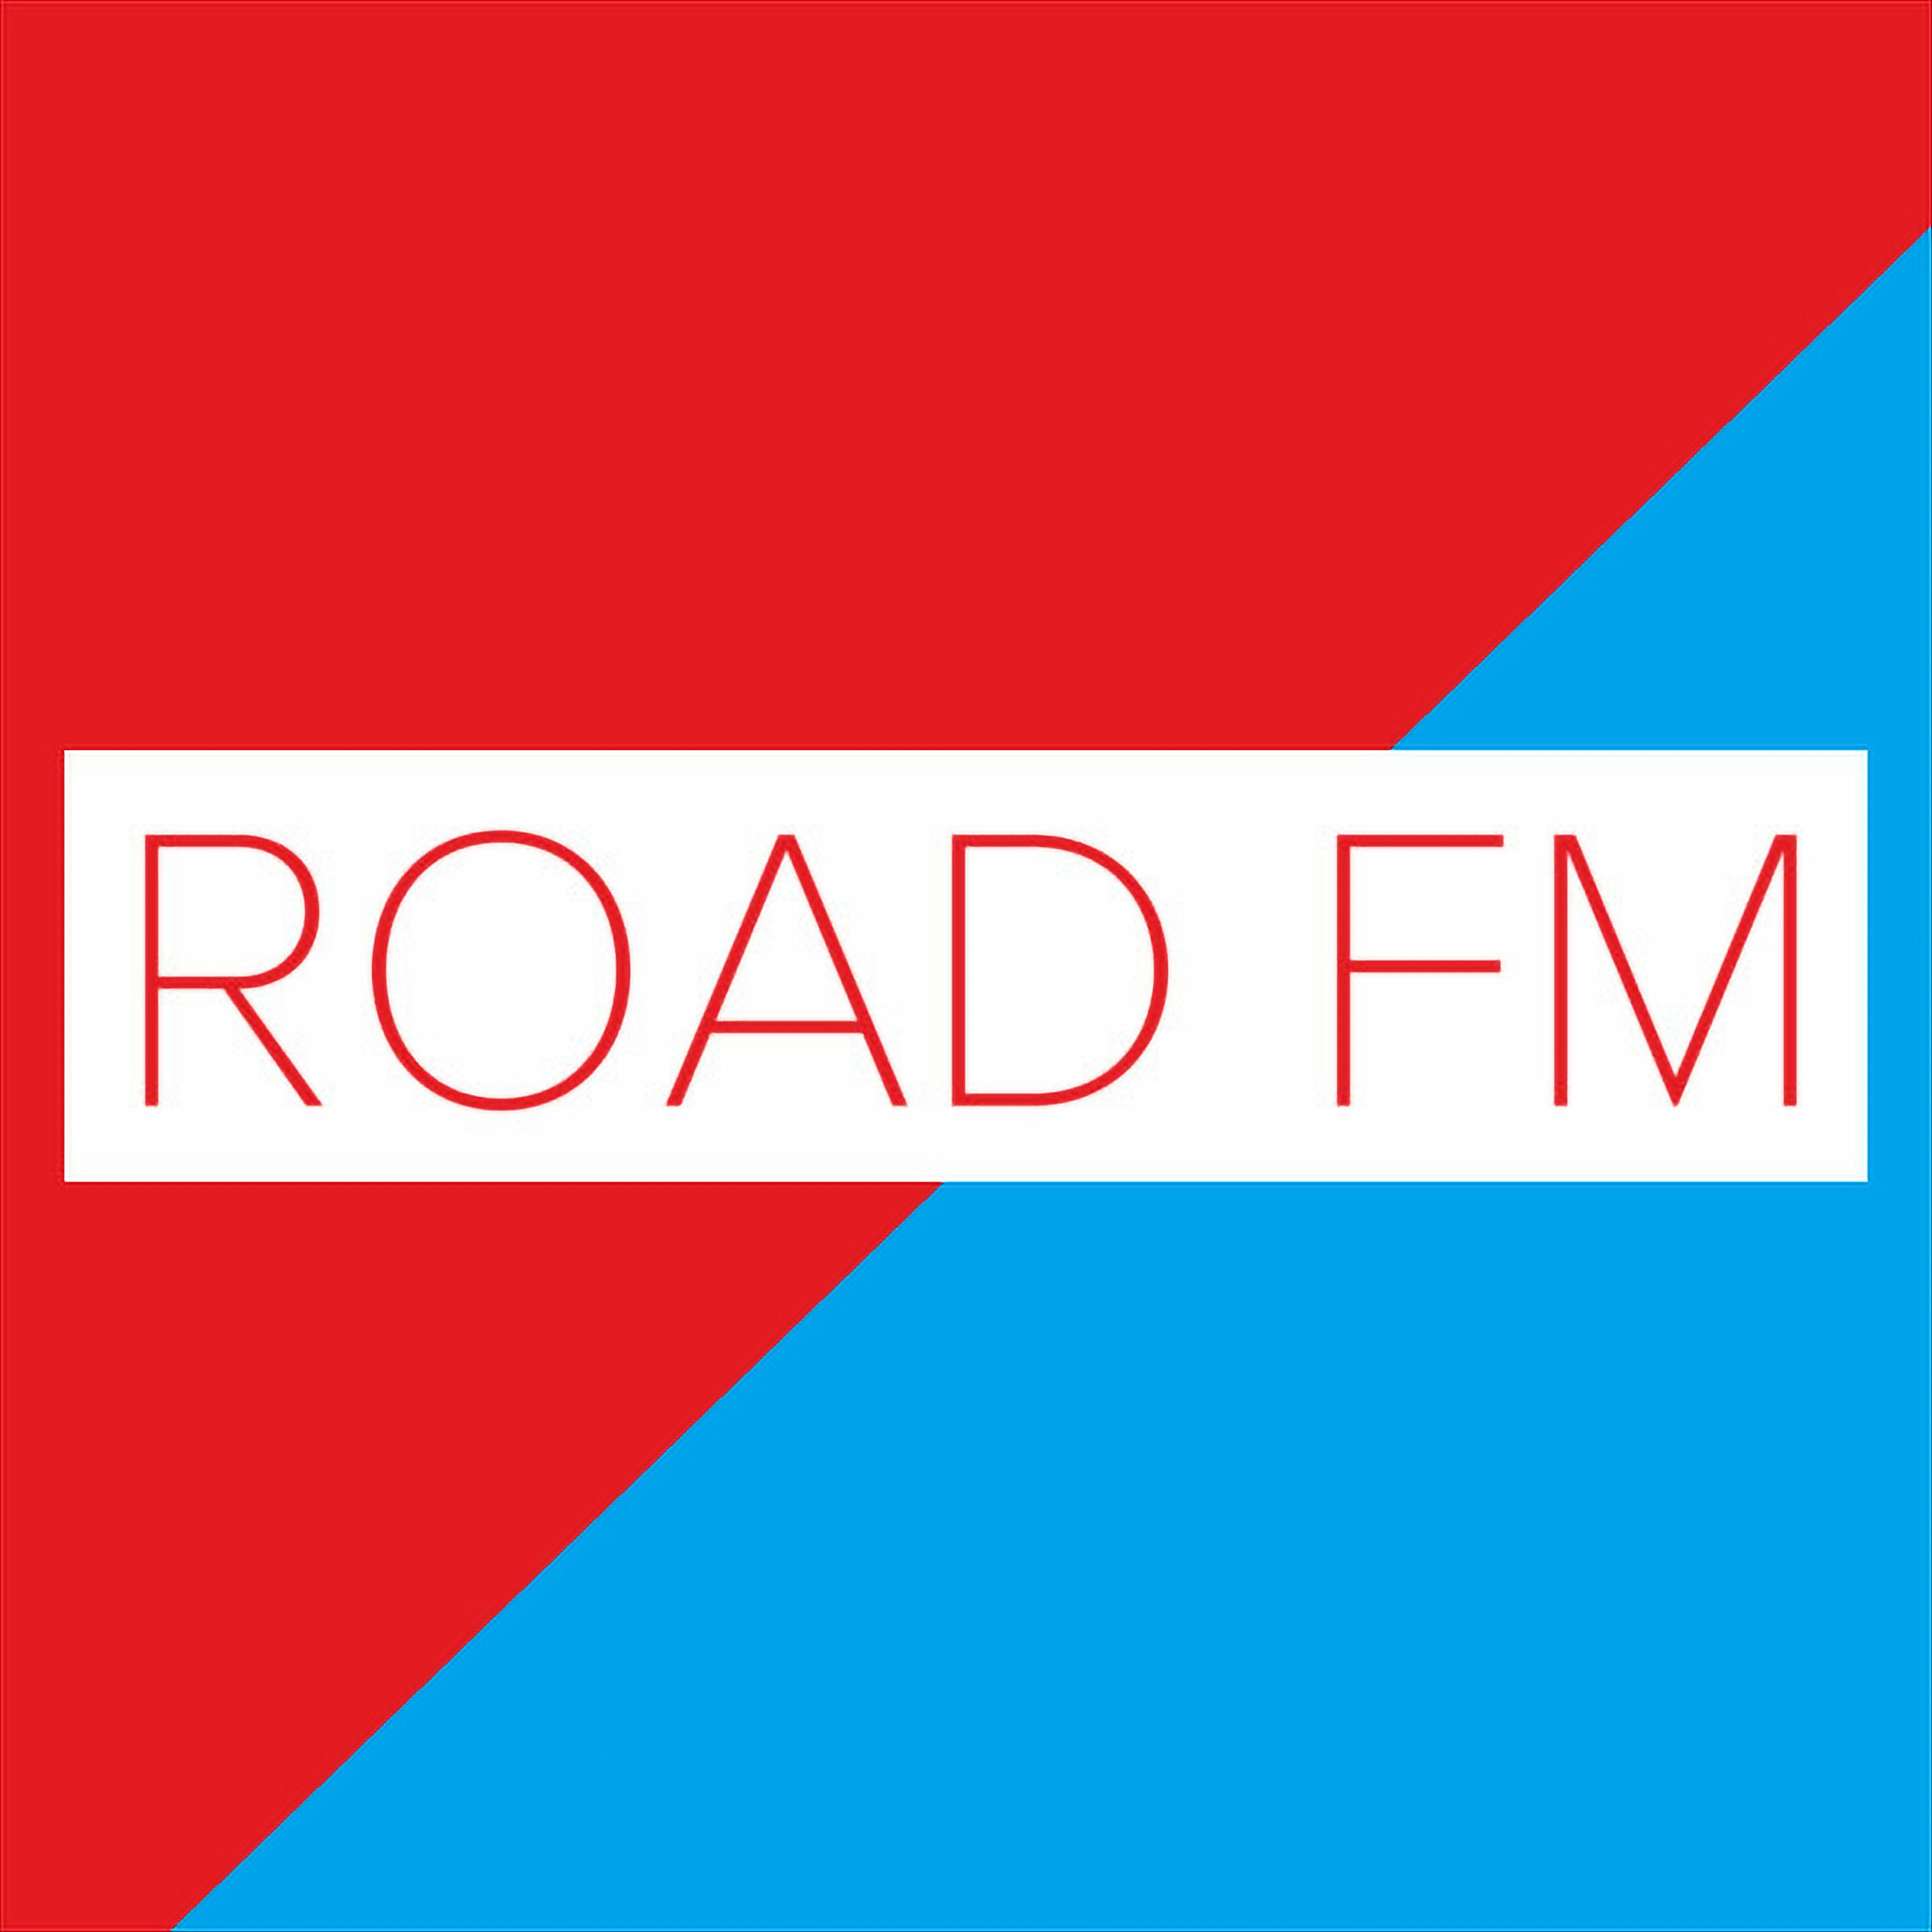 Road FM - Play Rewind, Play Road!